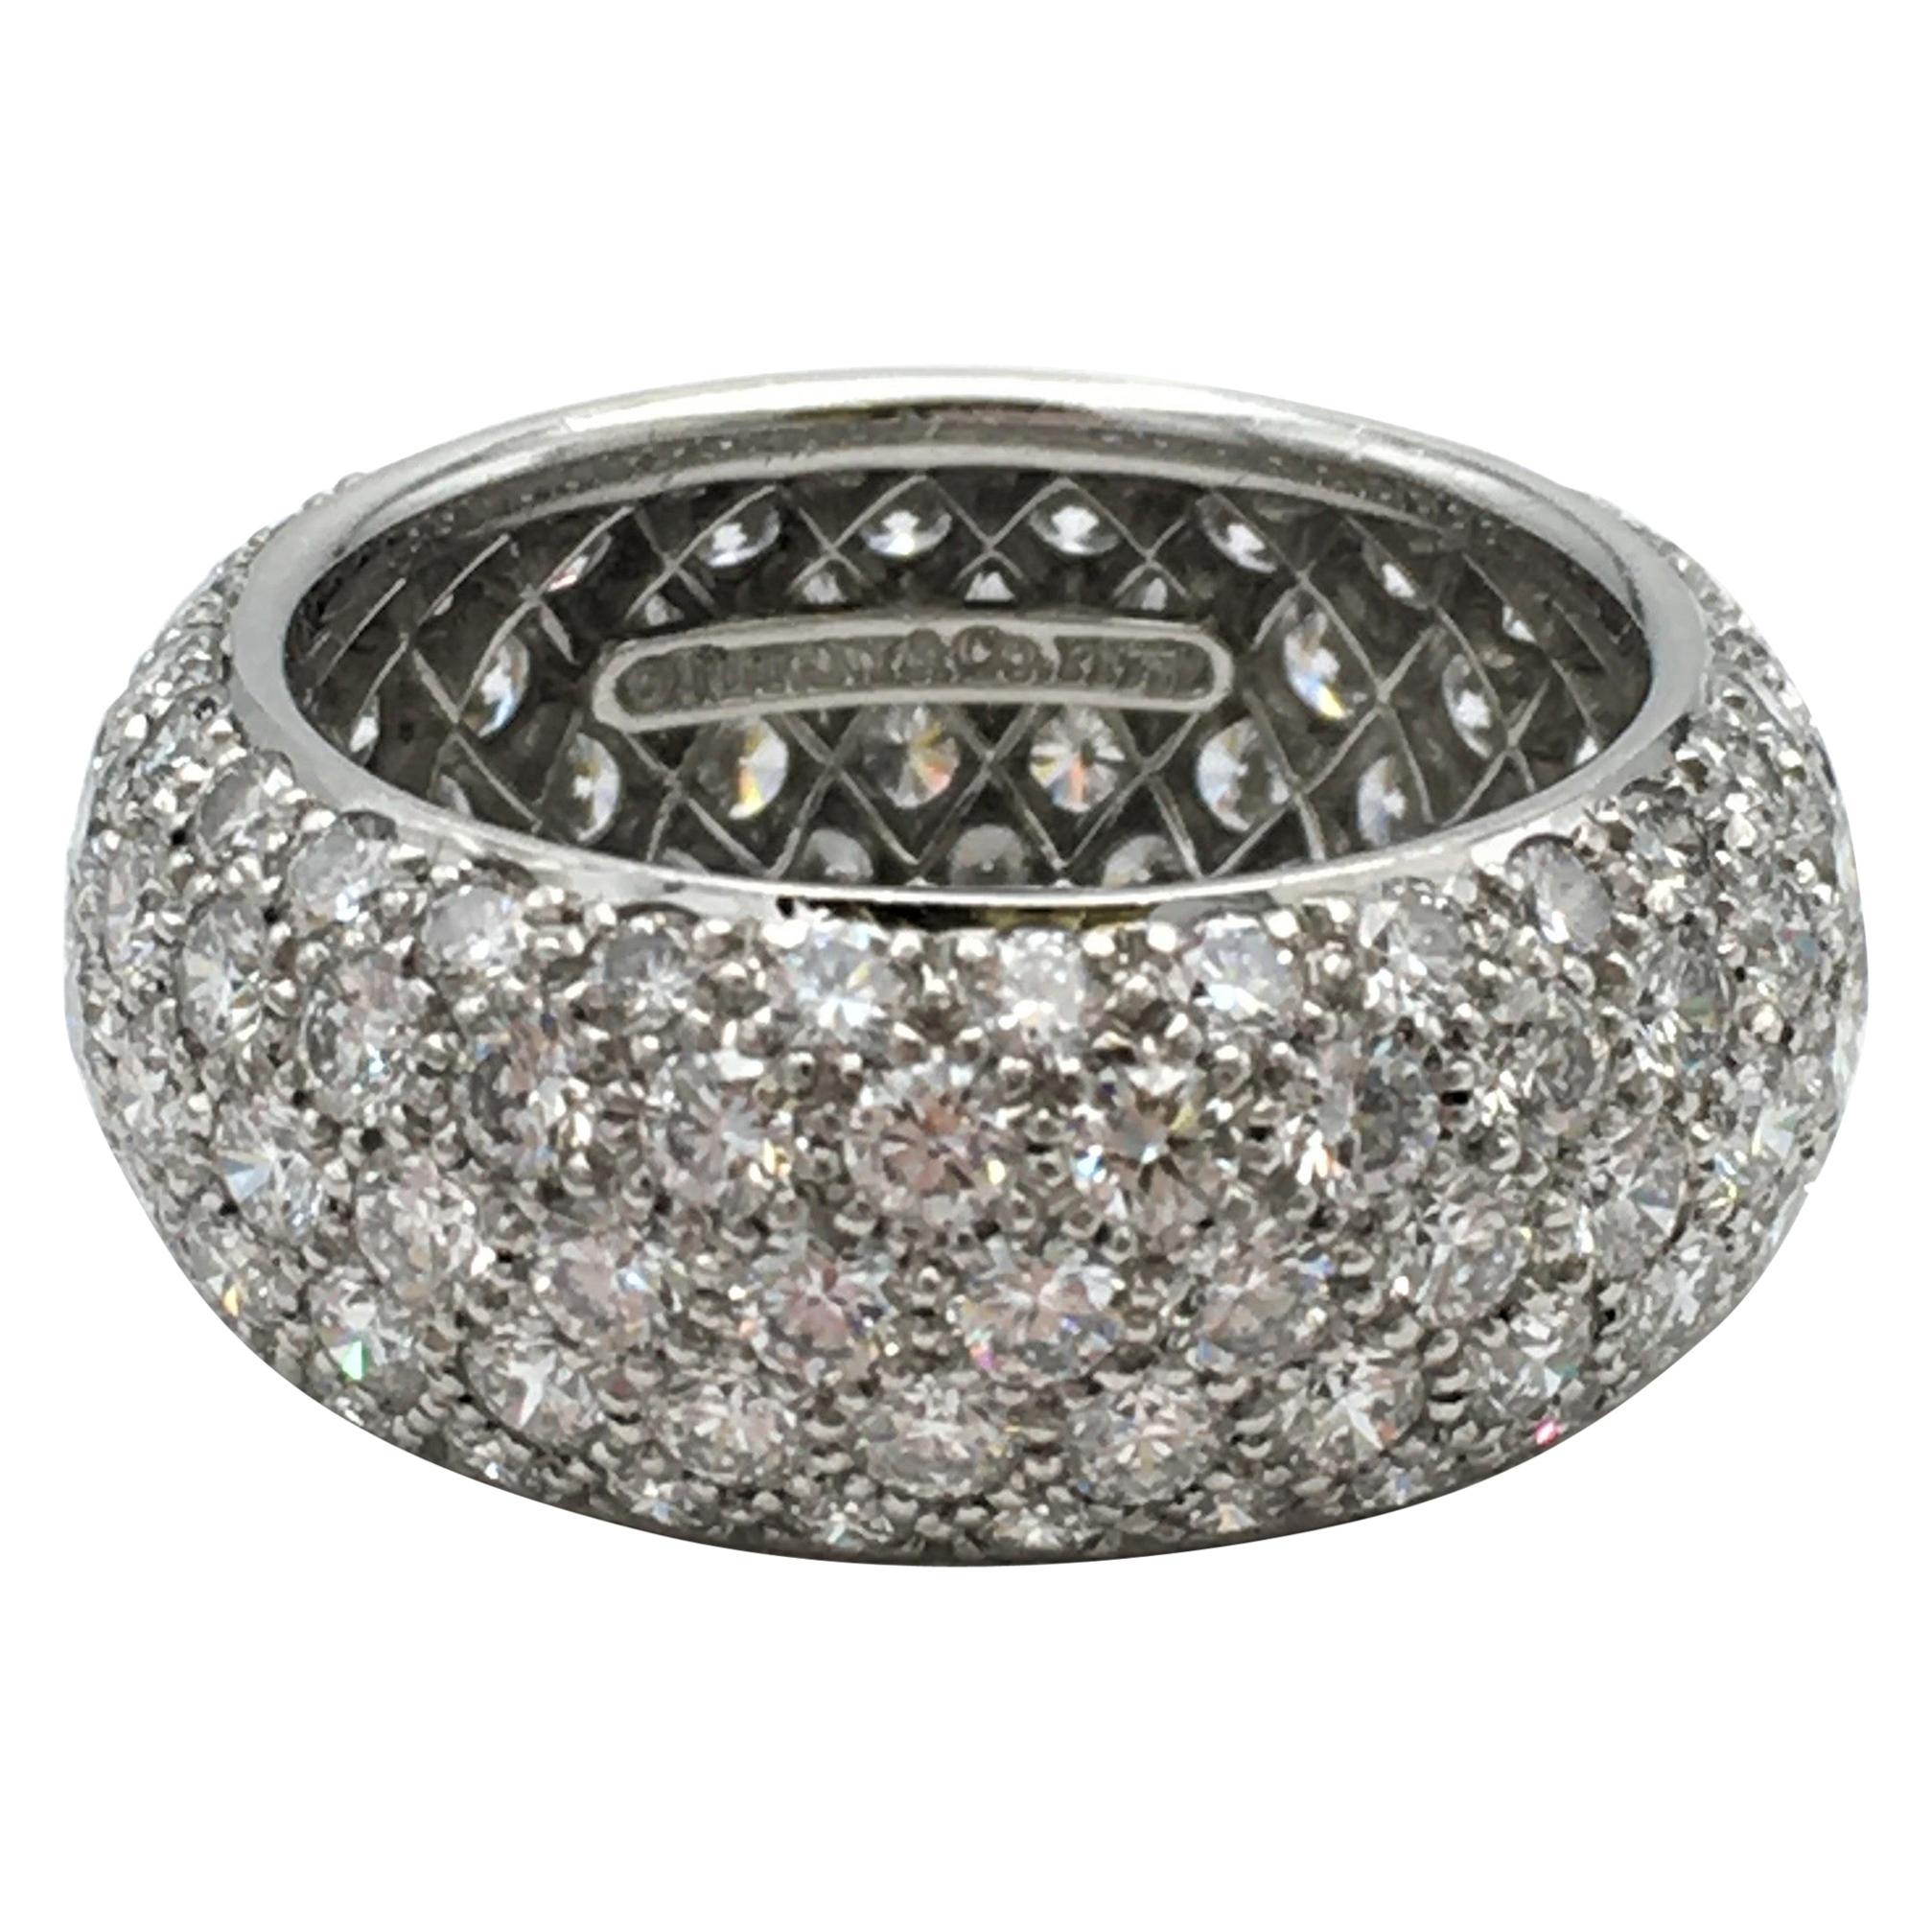 Tiffany & Co. 'Etoile' Platinum and Diamond Band Ring